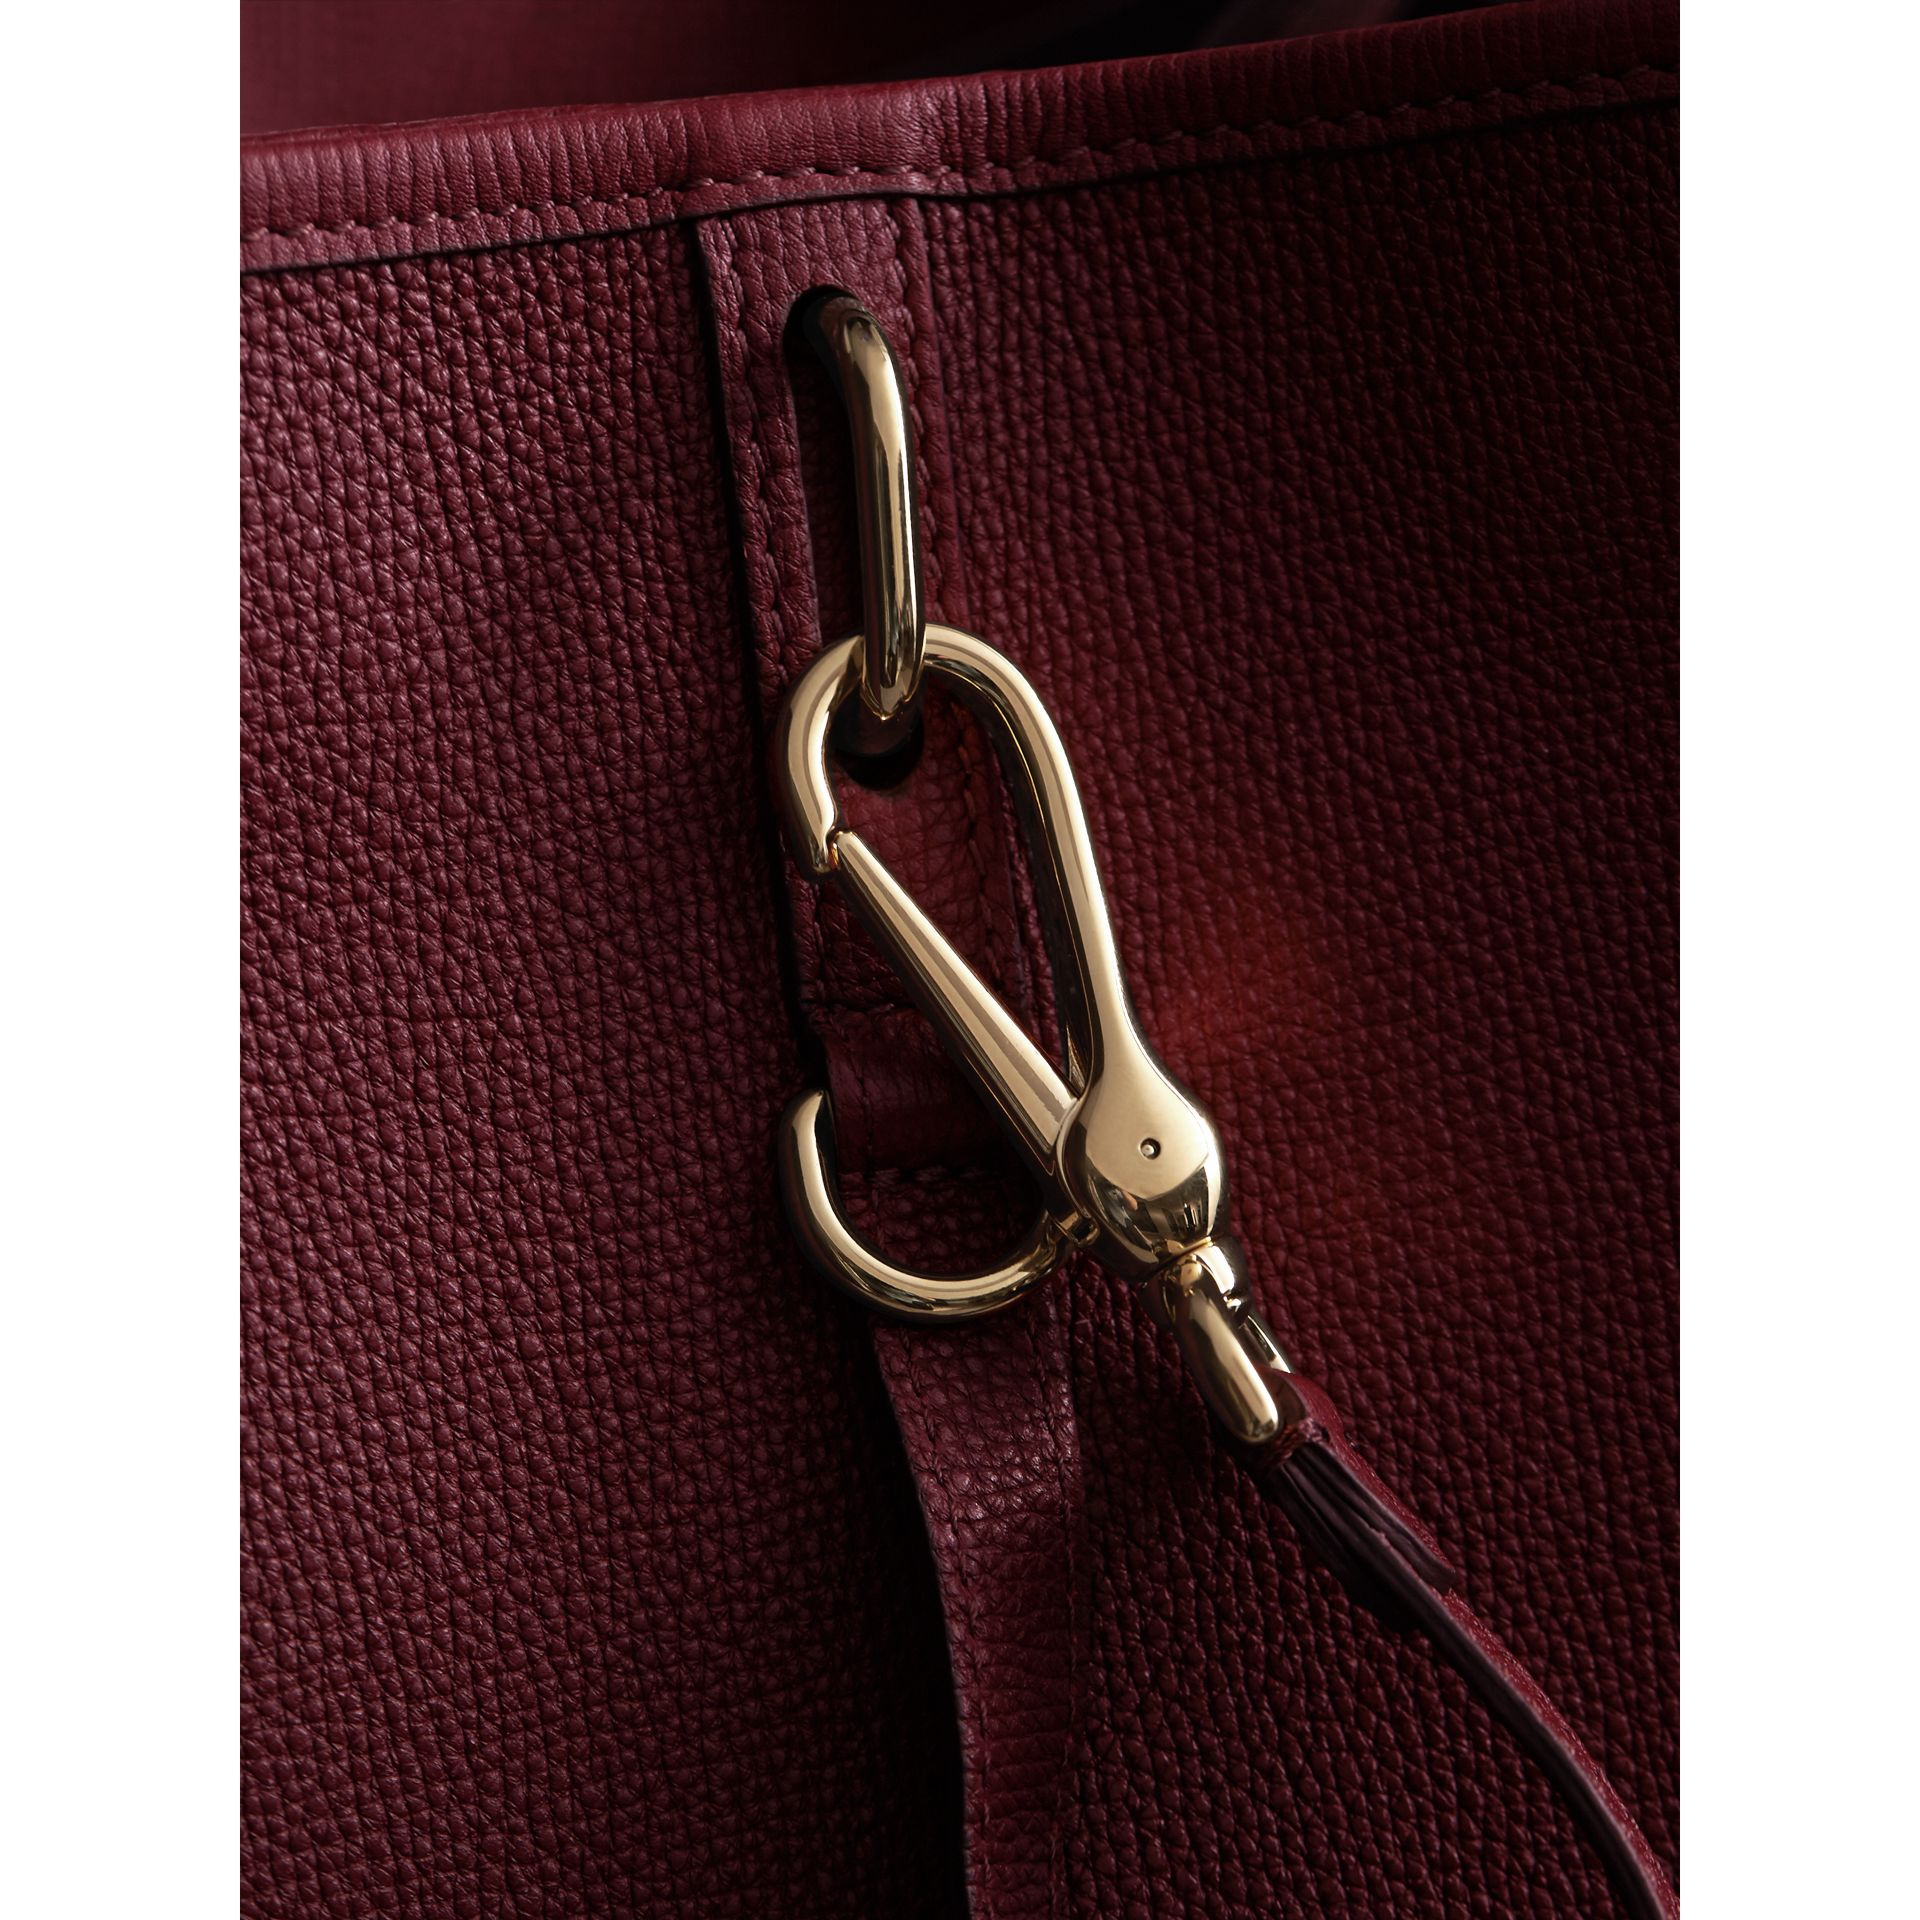 Medium Grainy Leather Tote Bag in Mahogany Red - Women | Burberry - gallery image 2